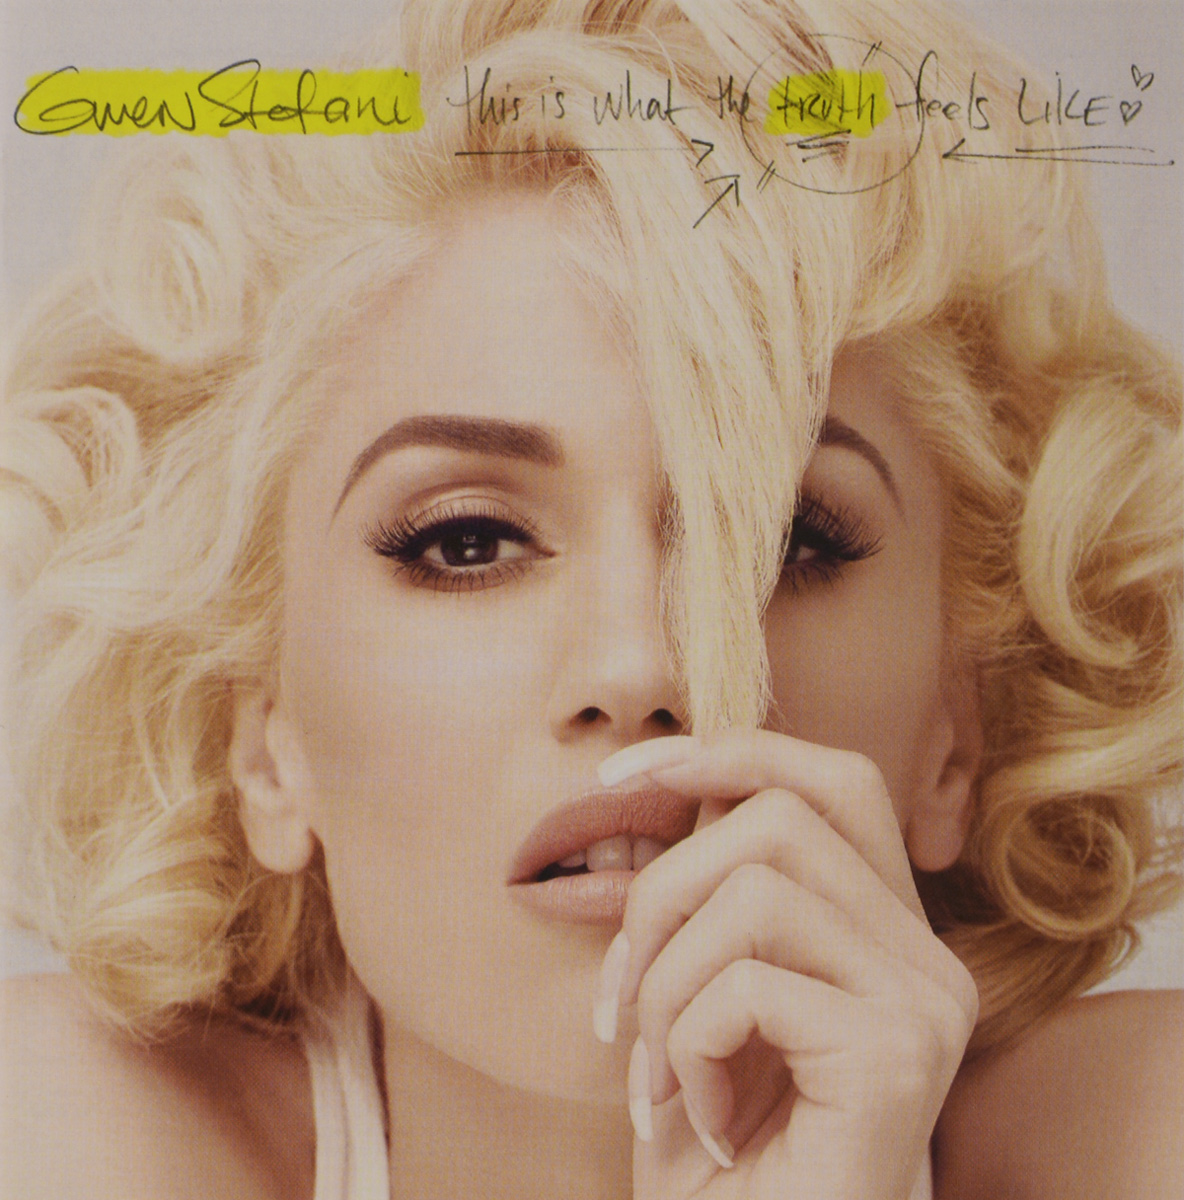 Гвен Стефани Gwen Stefani. This Is What The Truth Feels Like a kiss like this